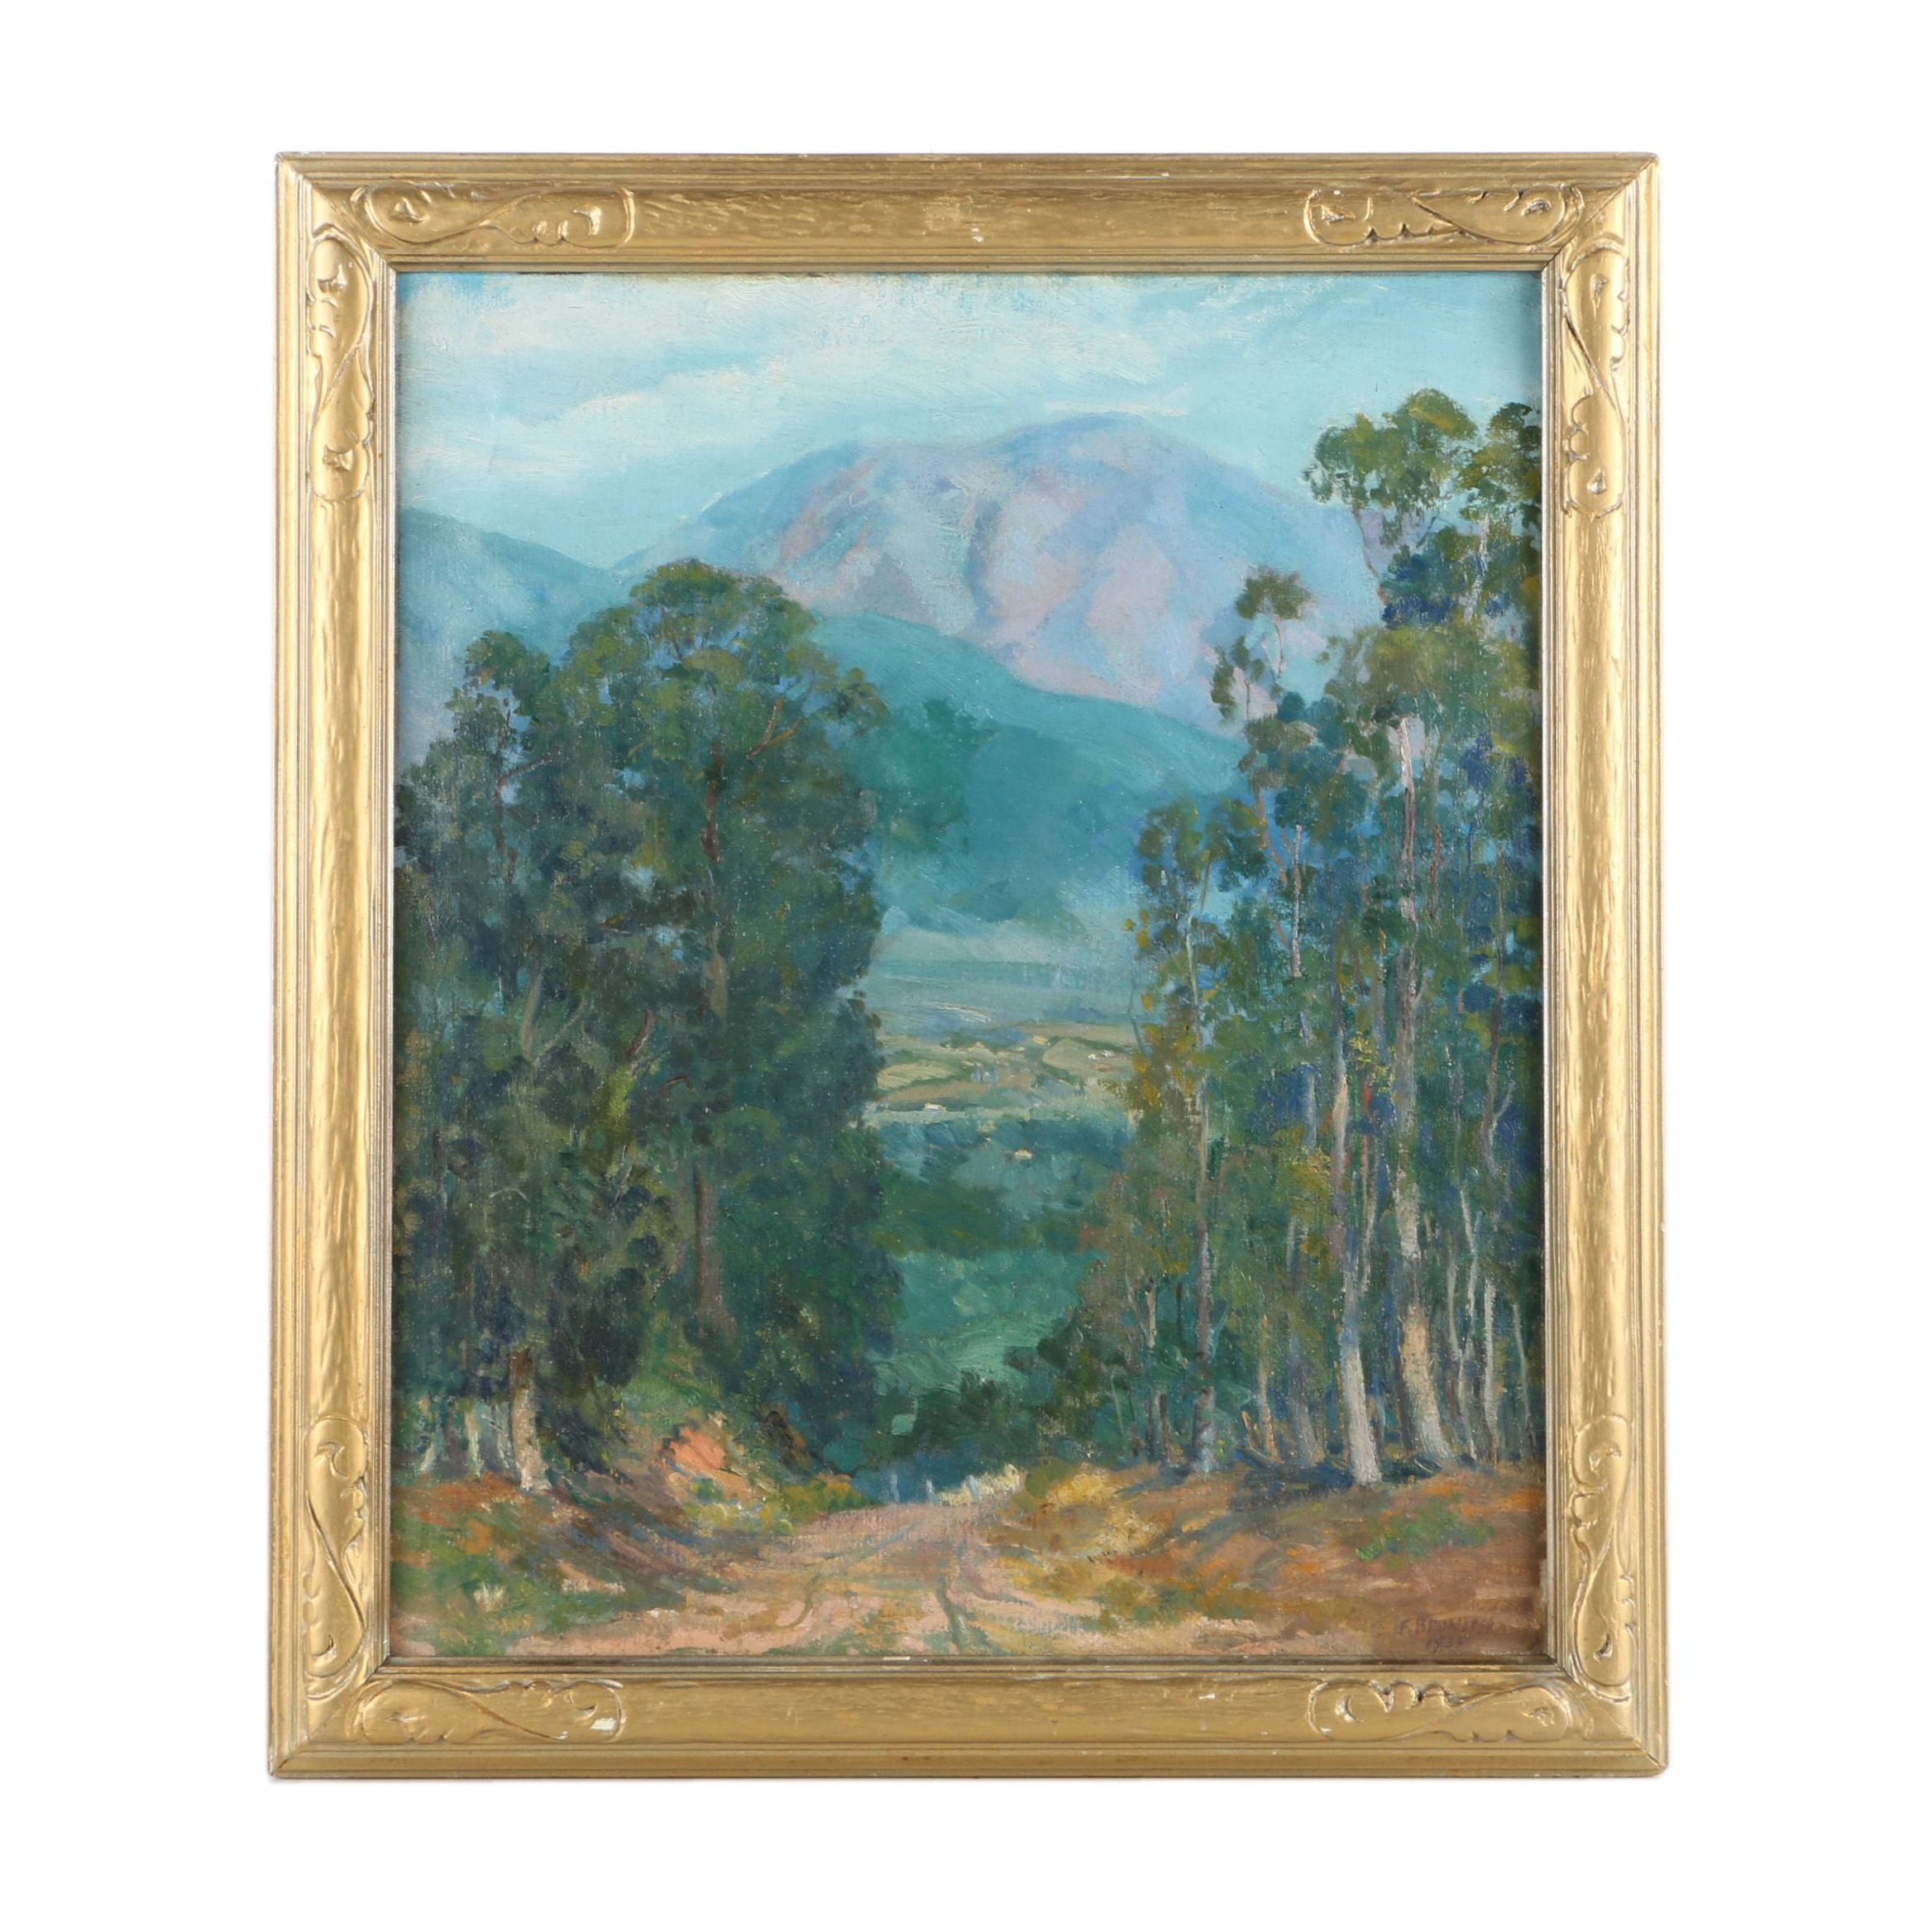 F. Brunish 1935 Oil Painting on Canvas of Mountain Landscape Scene